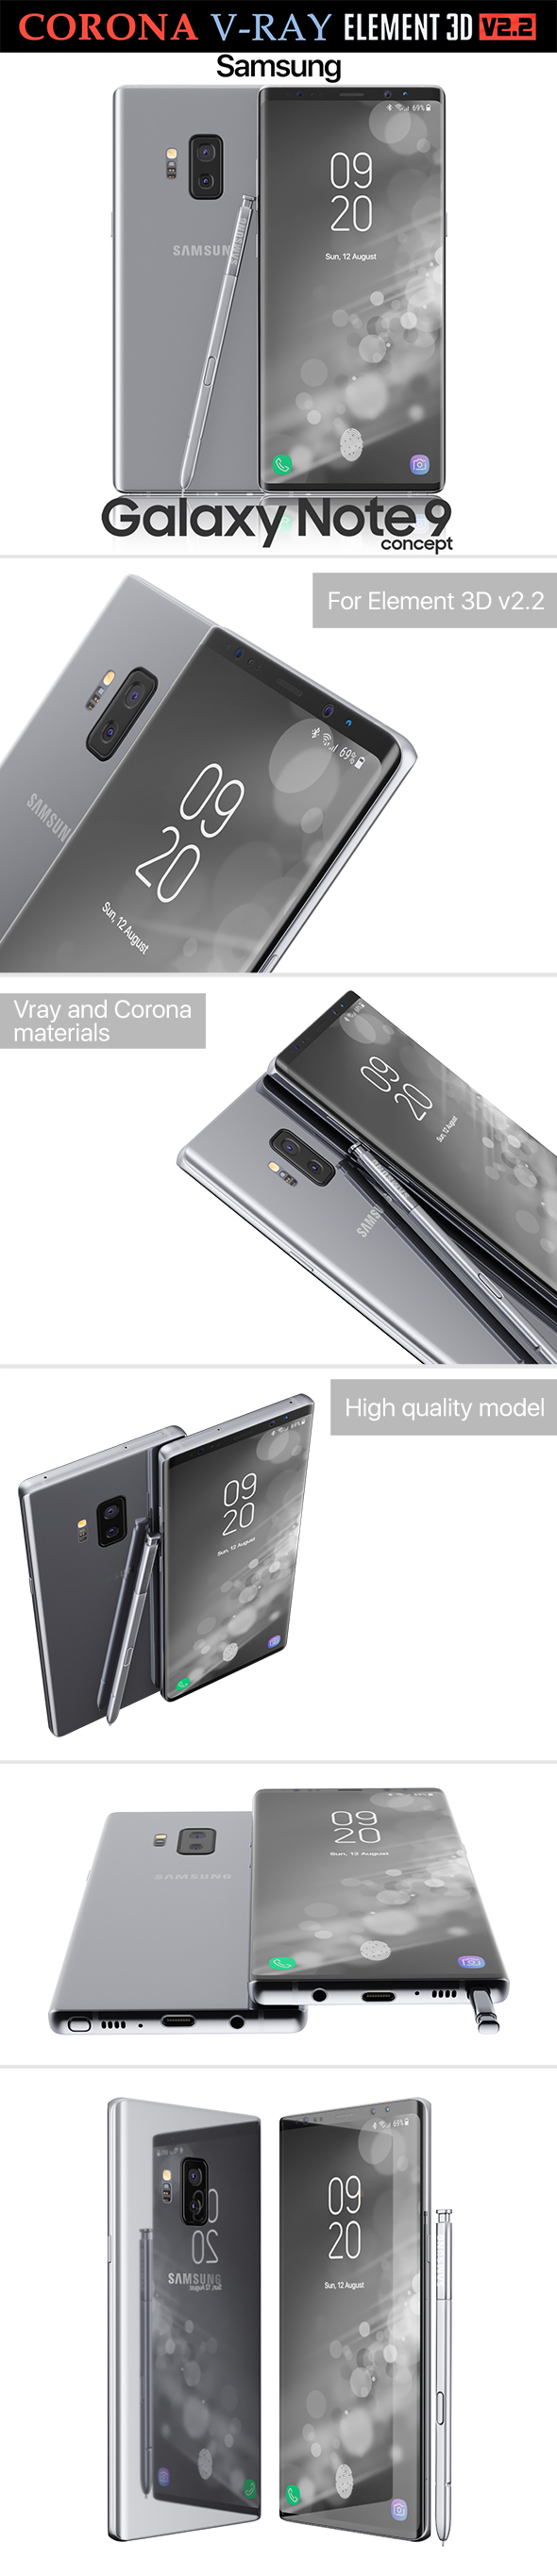 Samsung Galaxy Note 9 Gray Concept - 3DOcean Item for Sale